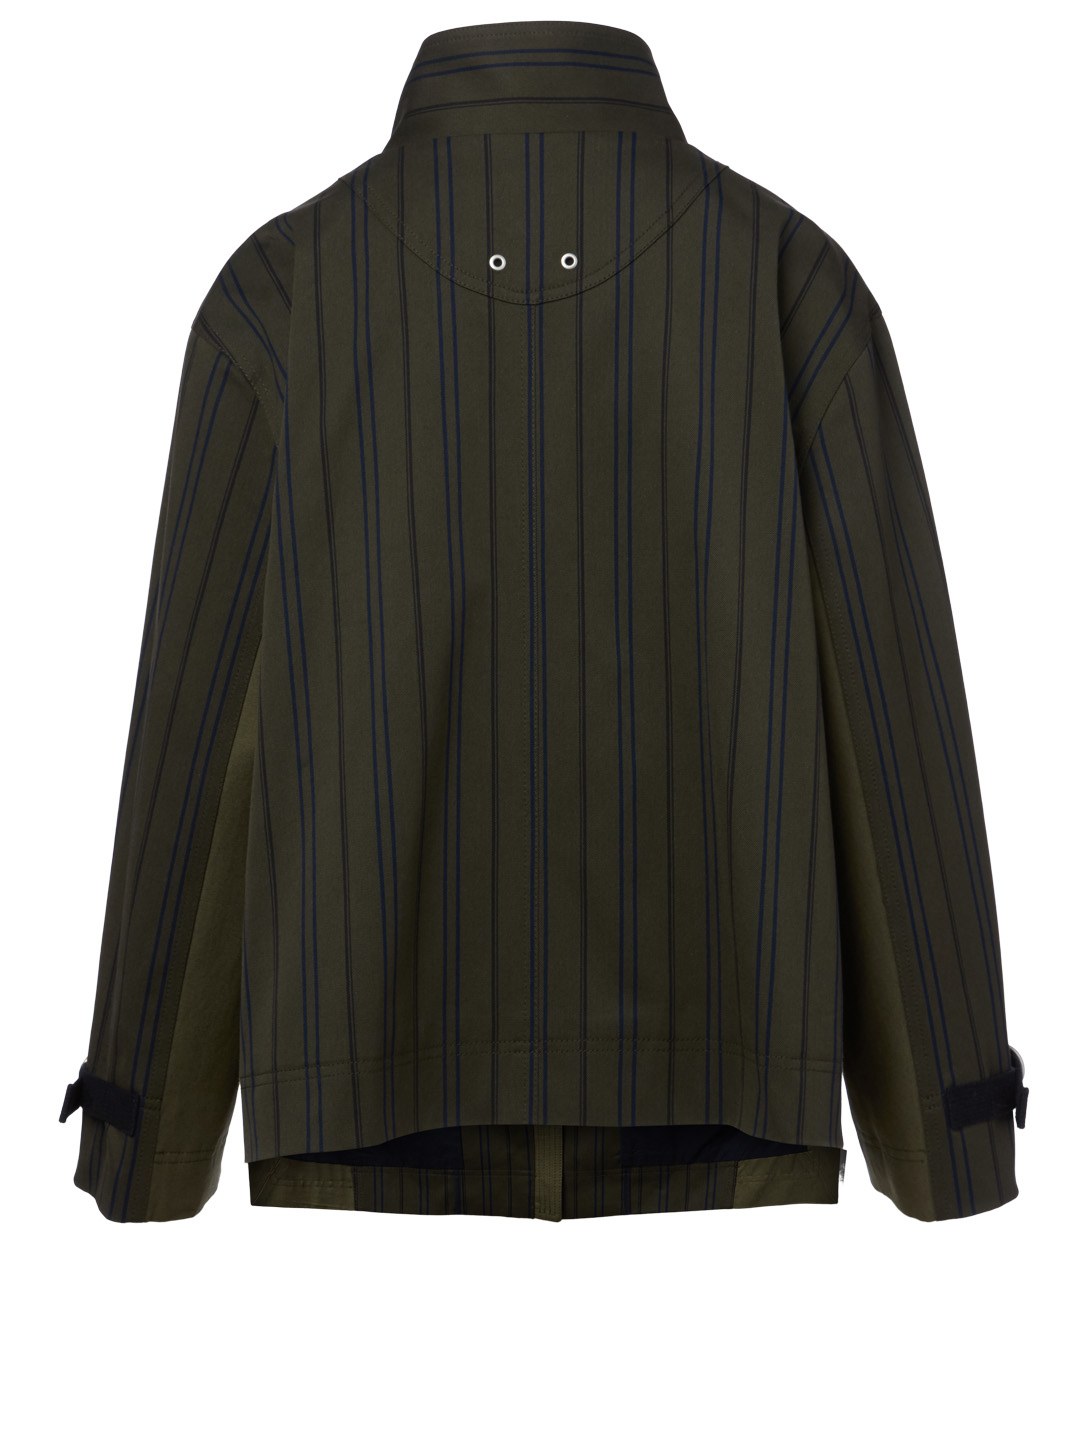 KUHO Zip Jacket In Striped Print Women's Green